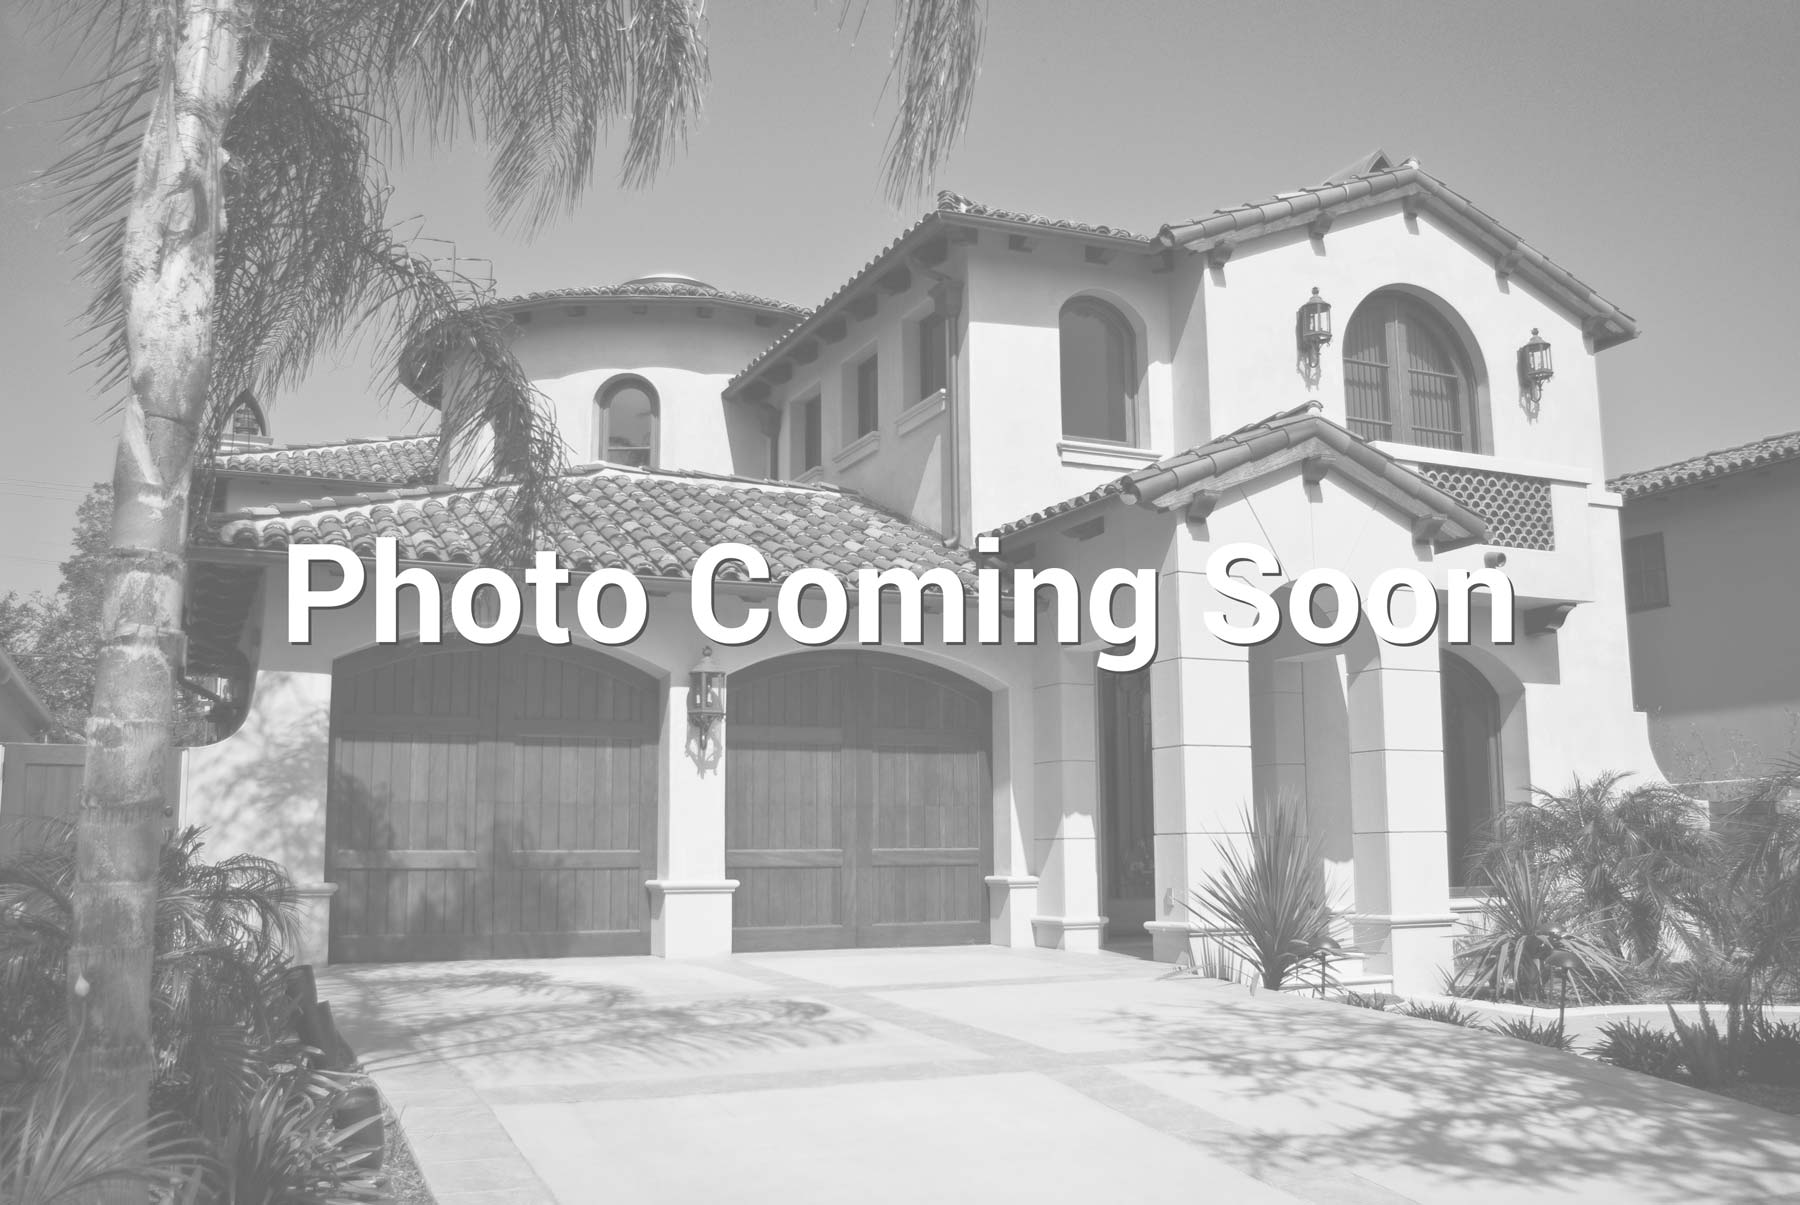 $467,900 - 3Br/2Ba -  for Sale in Lemon Grove, Lemon Grove